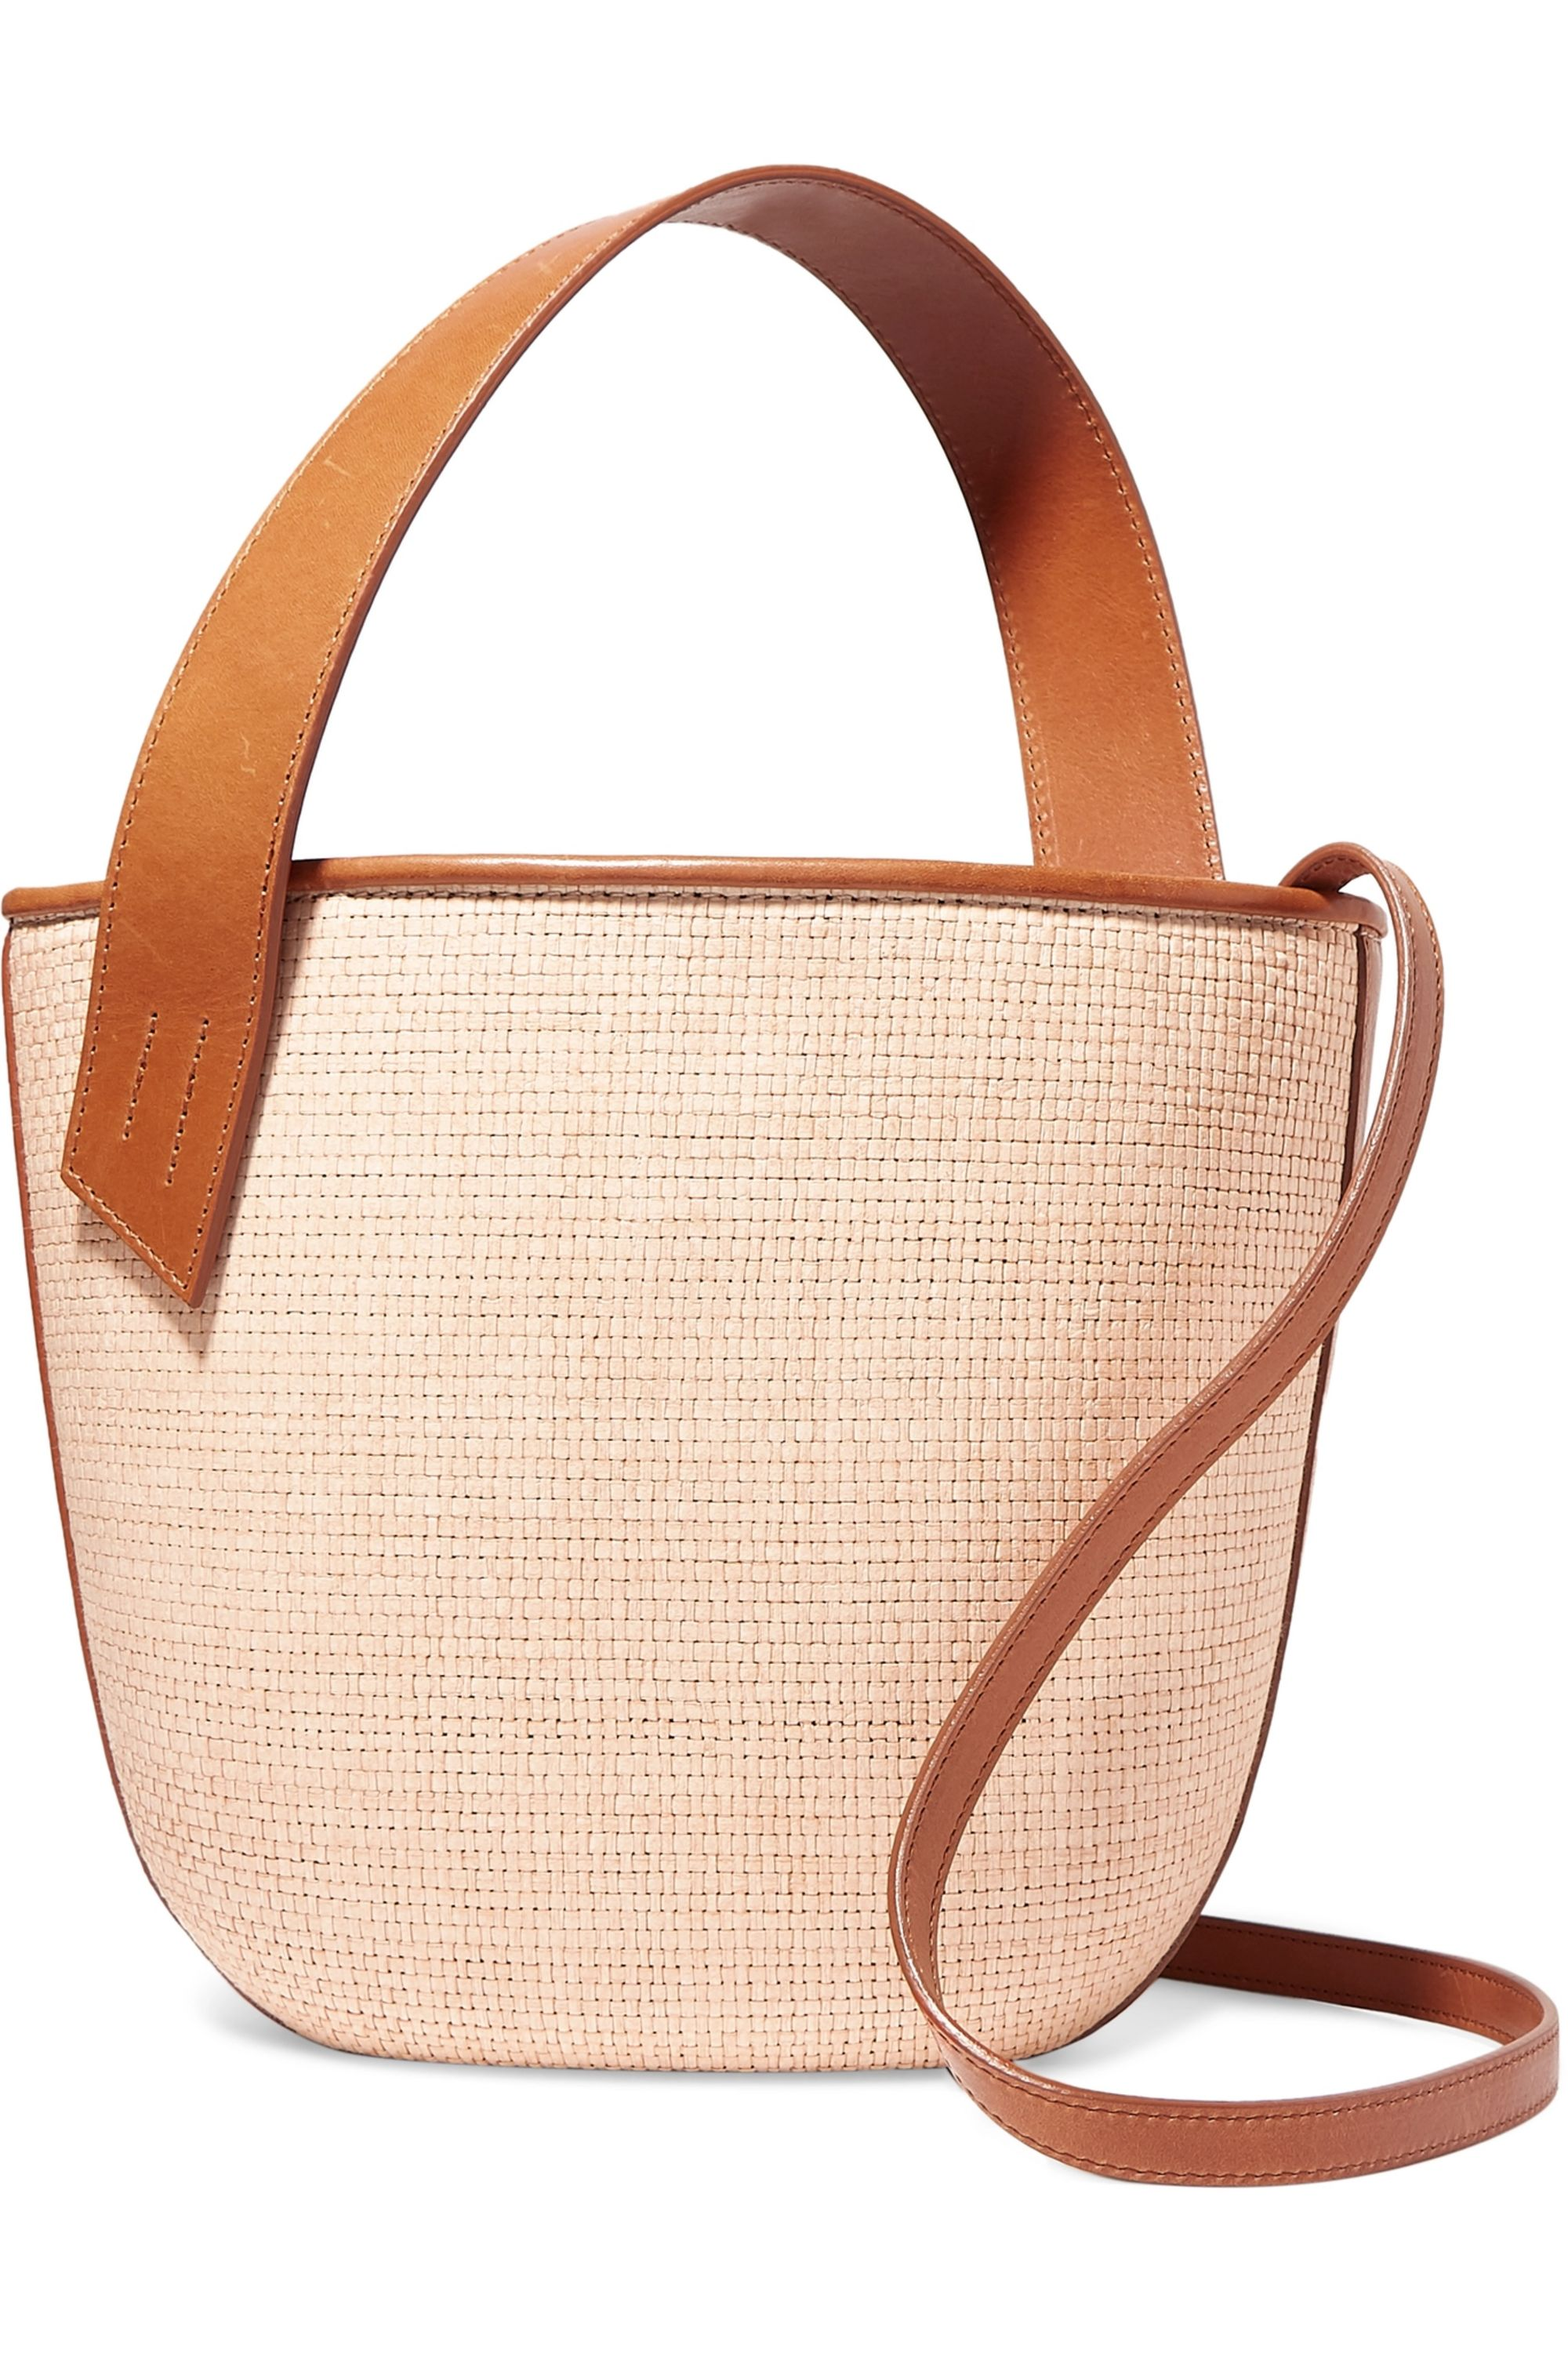 TL-180 Panier Saigon leather-trimmed woven raffia shoulder bag